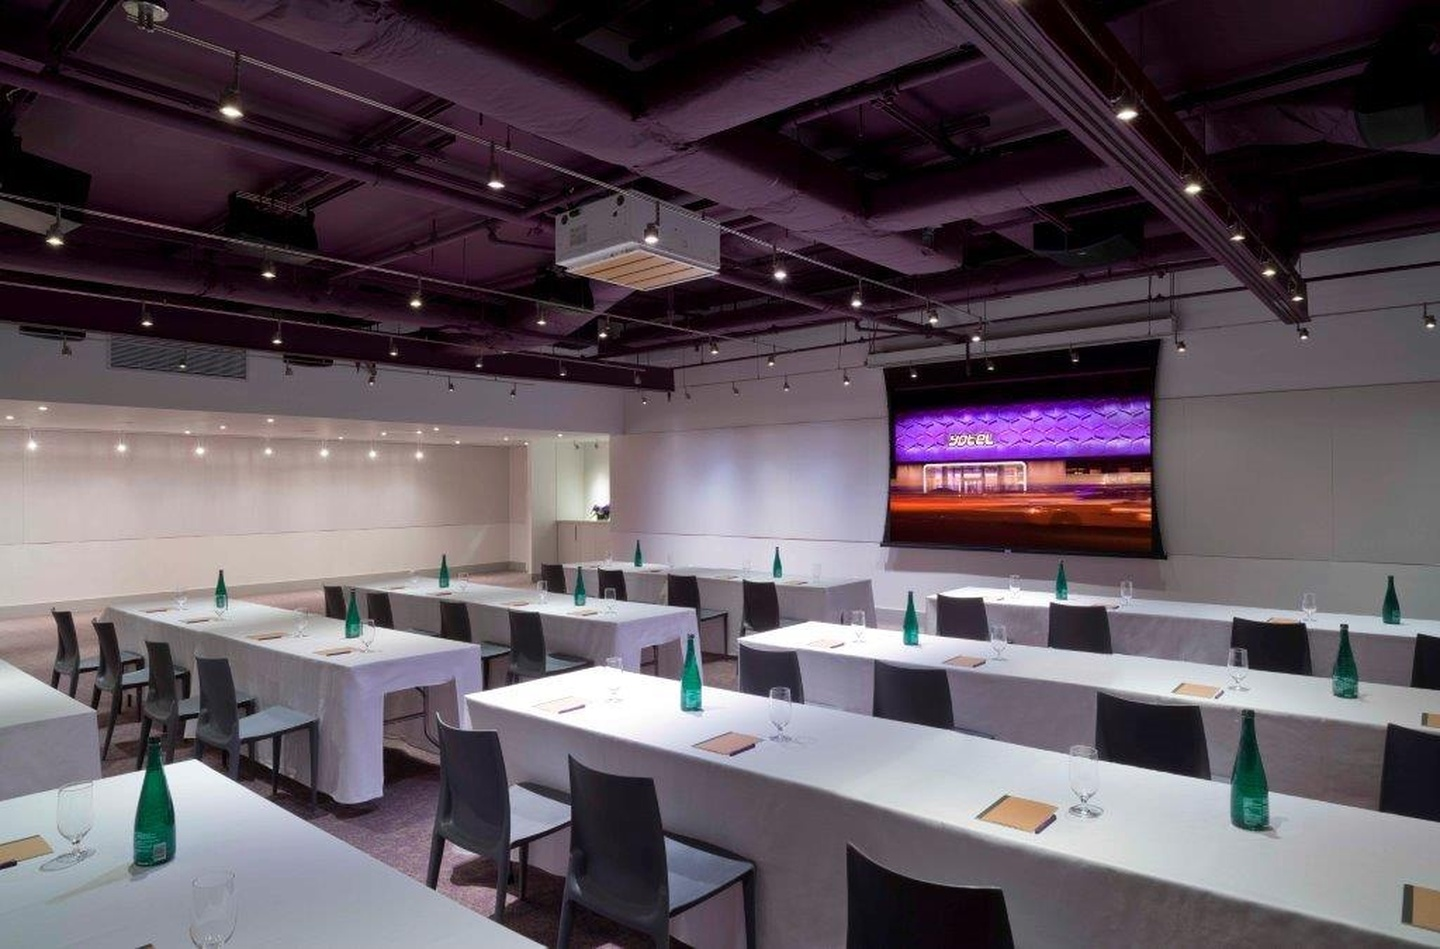 NYC seminar rooms Meeting room Yotel - Studio image 2